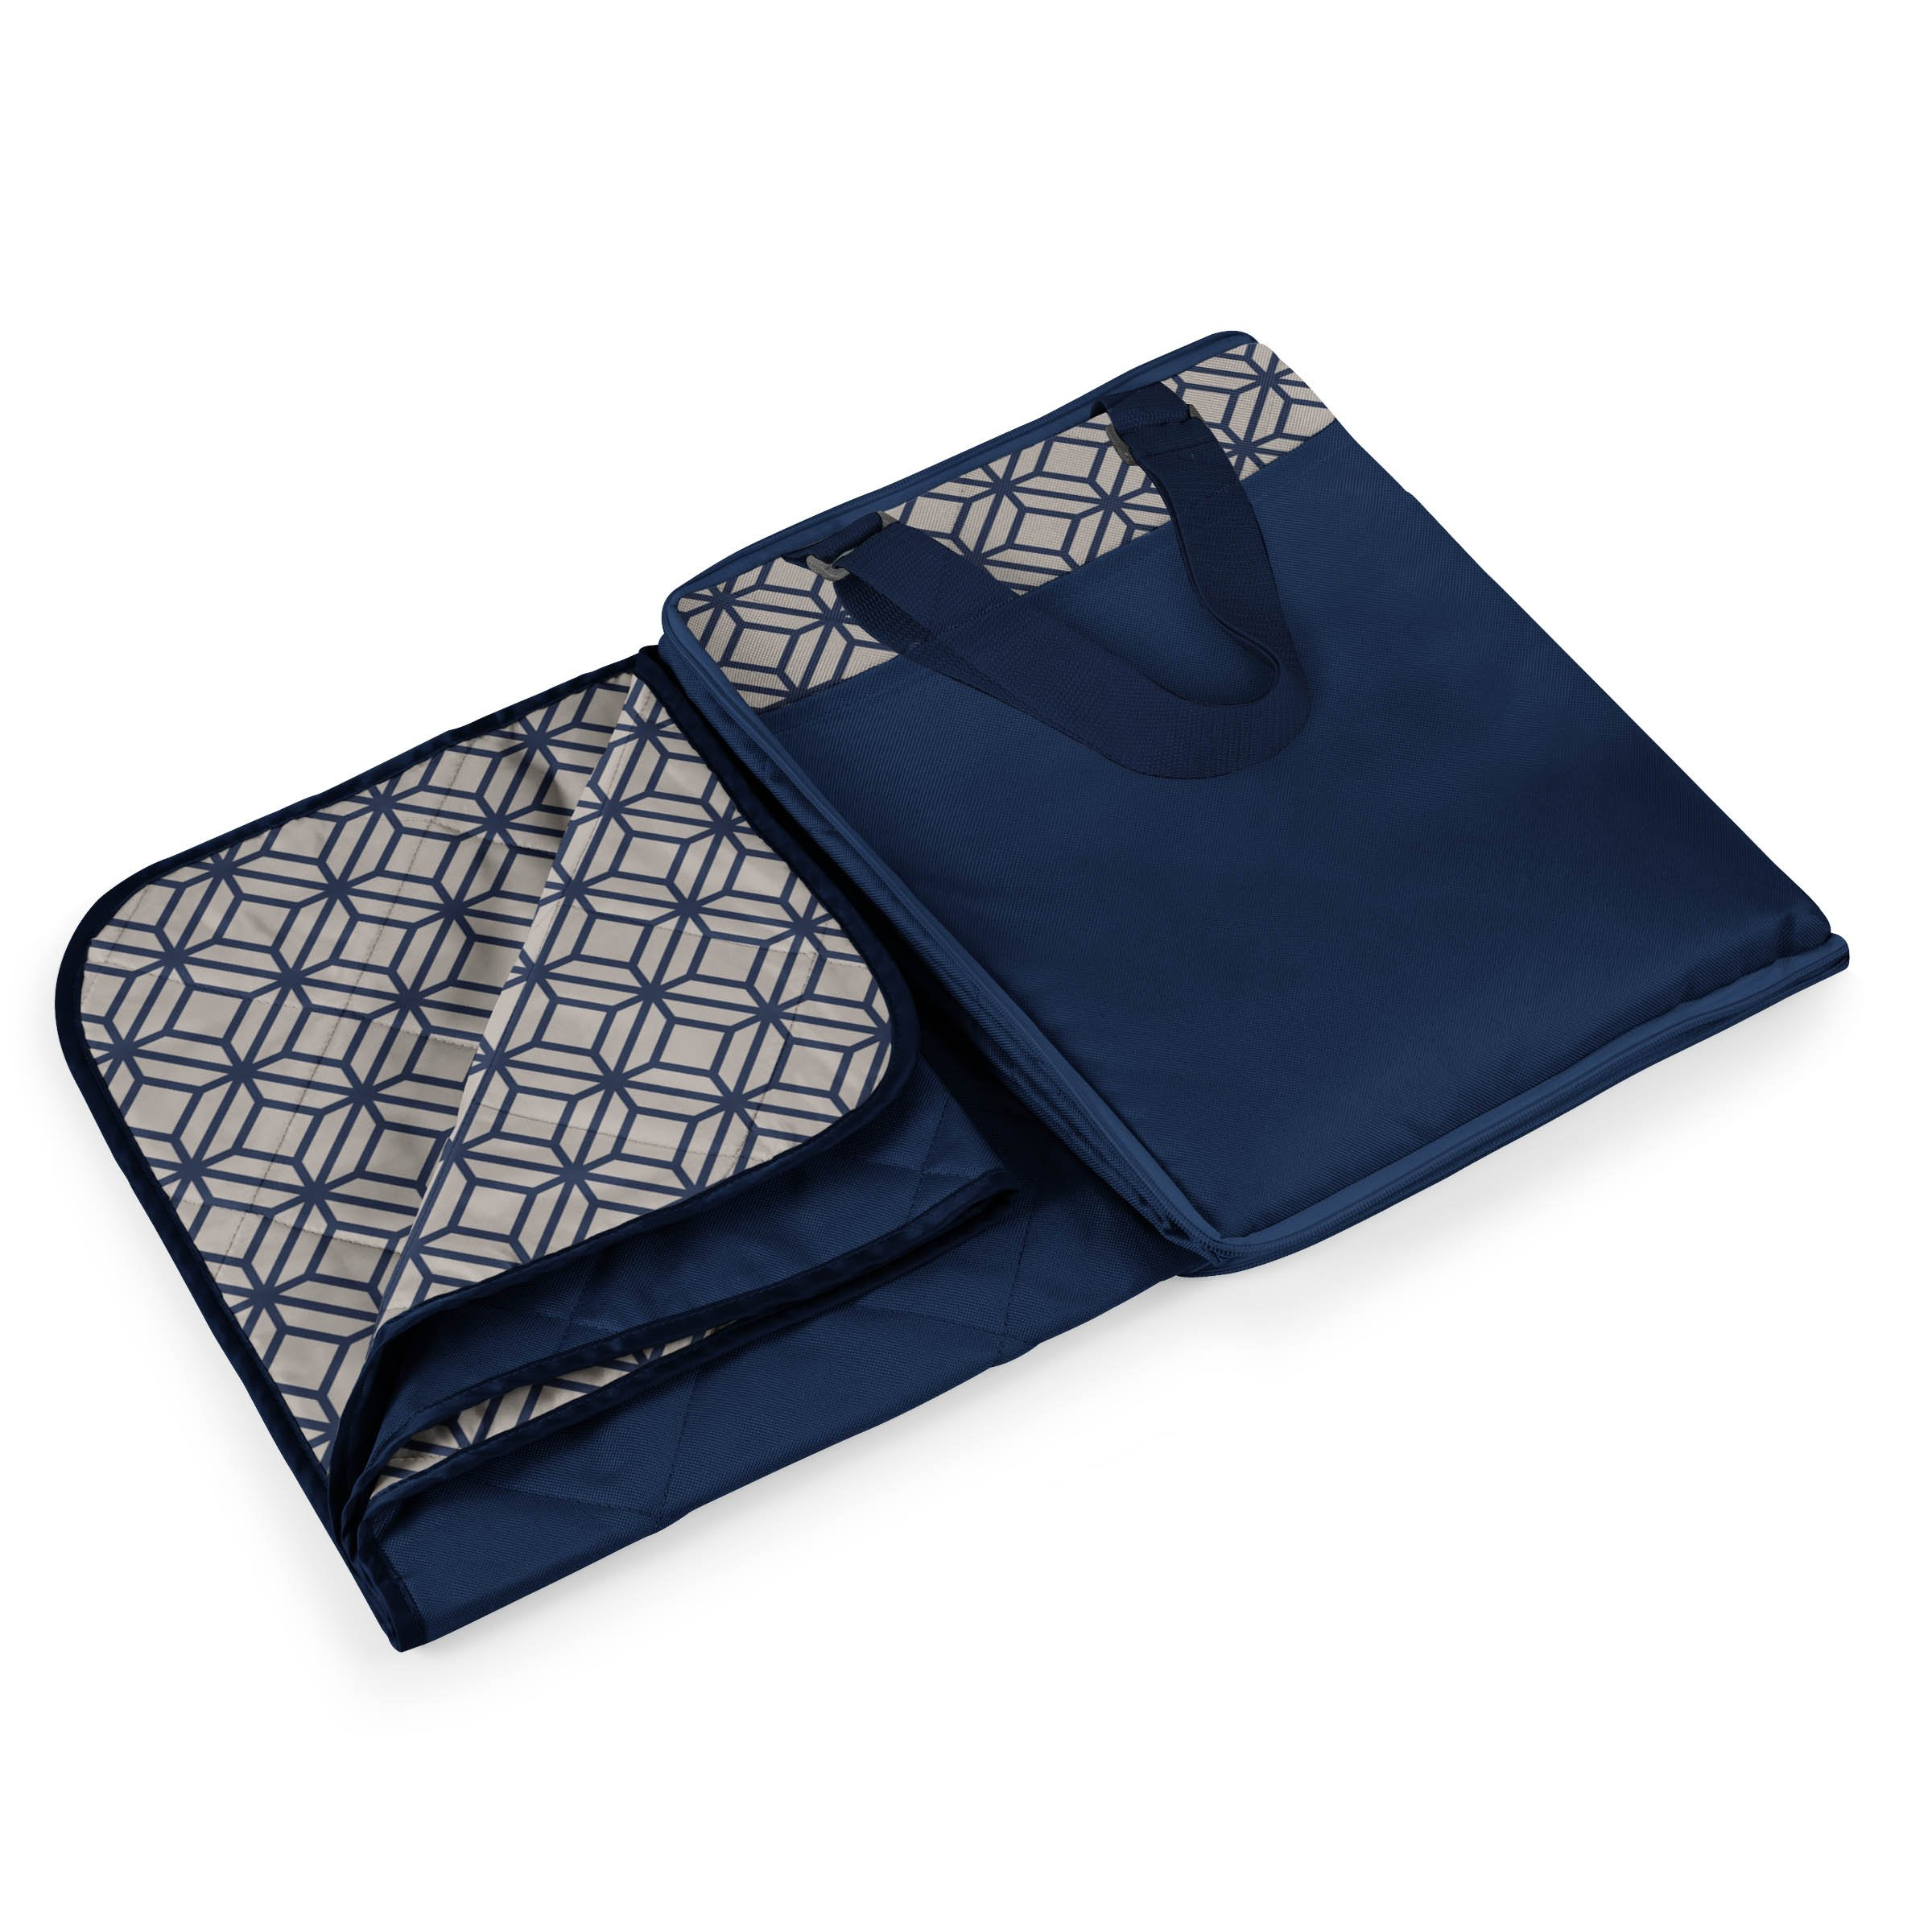 ONIVA - a Picnic Time Brand Vista Outdoor Picnic Blanket Tote XL, Midnight Blue with Morrocan Print by ONIVA - a Picnic Time brand